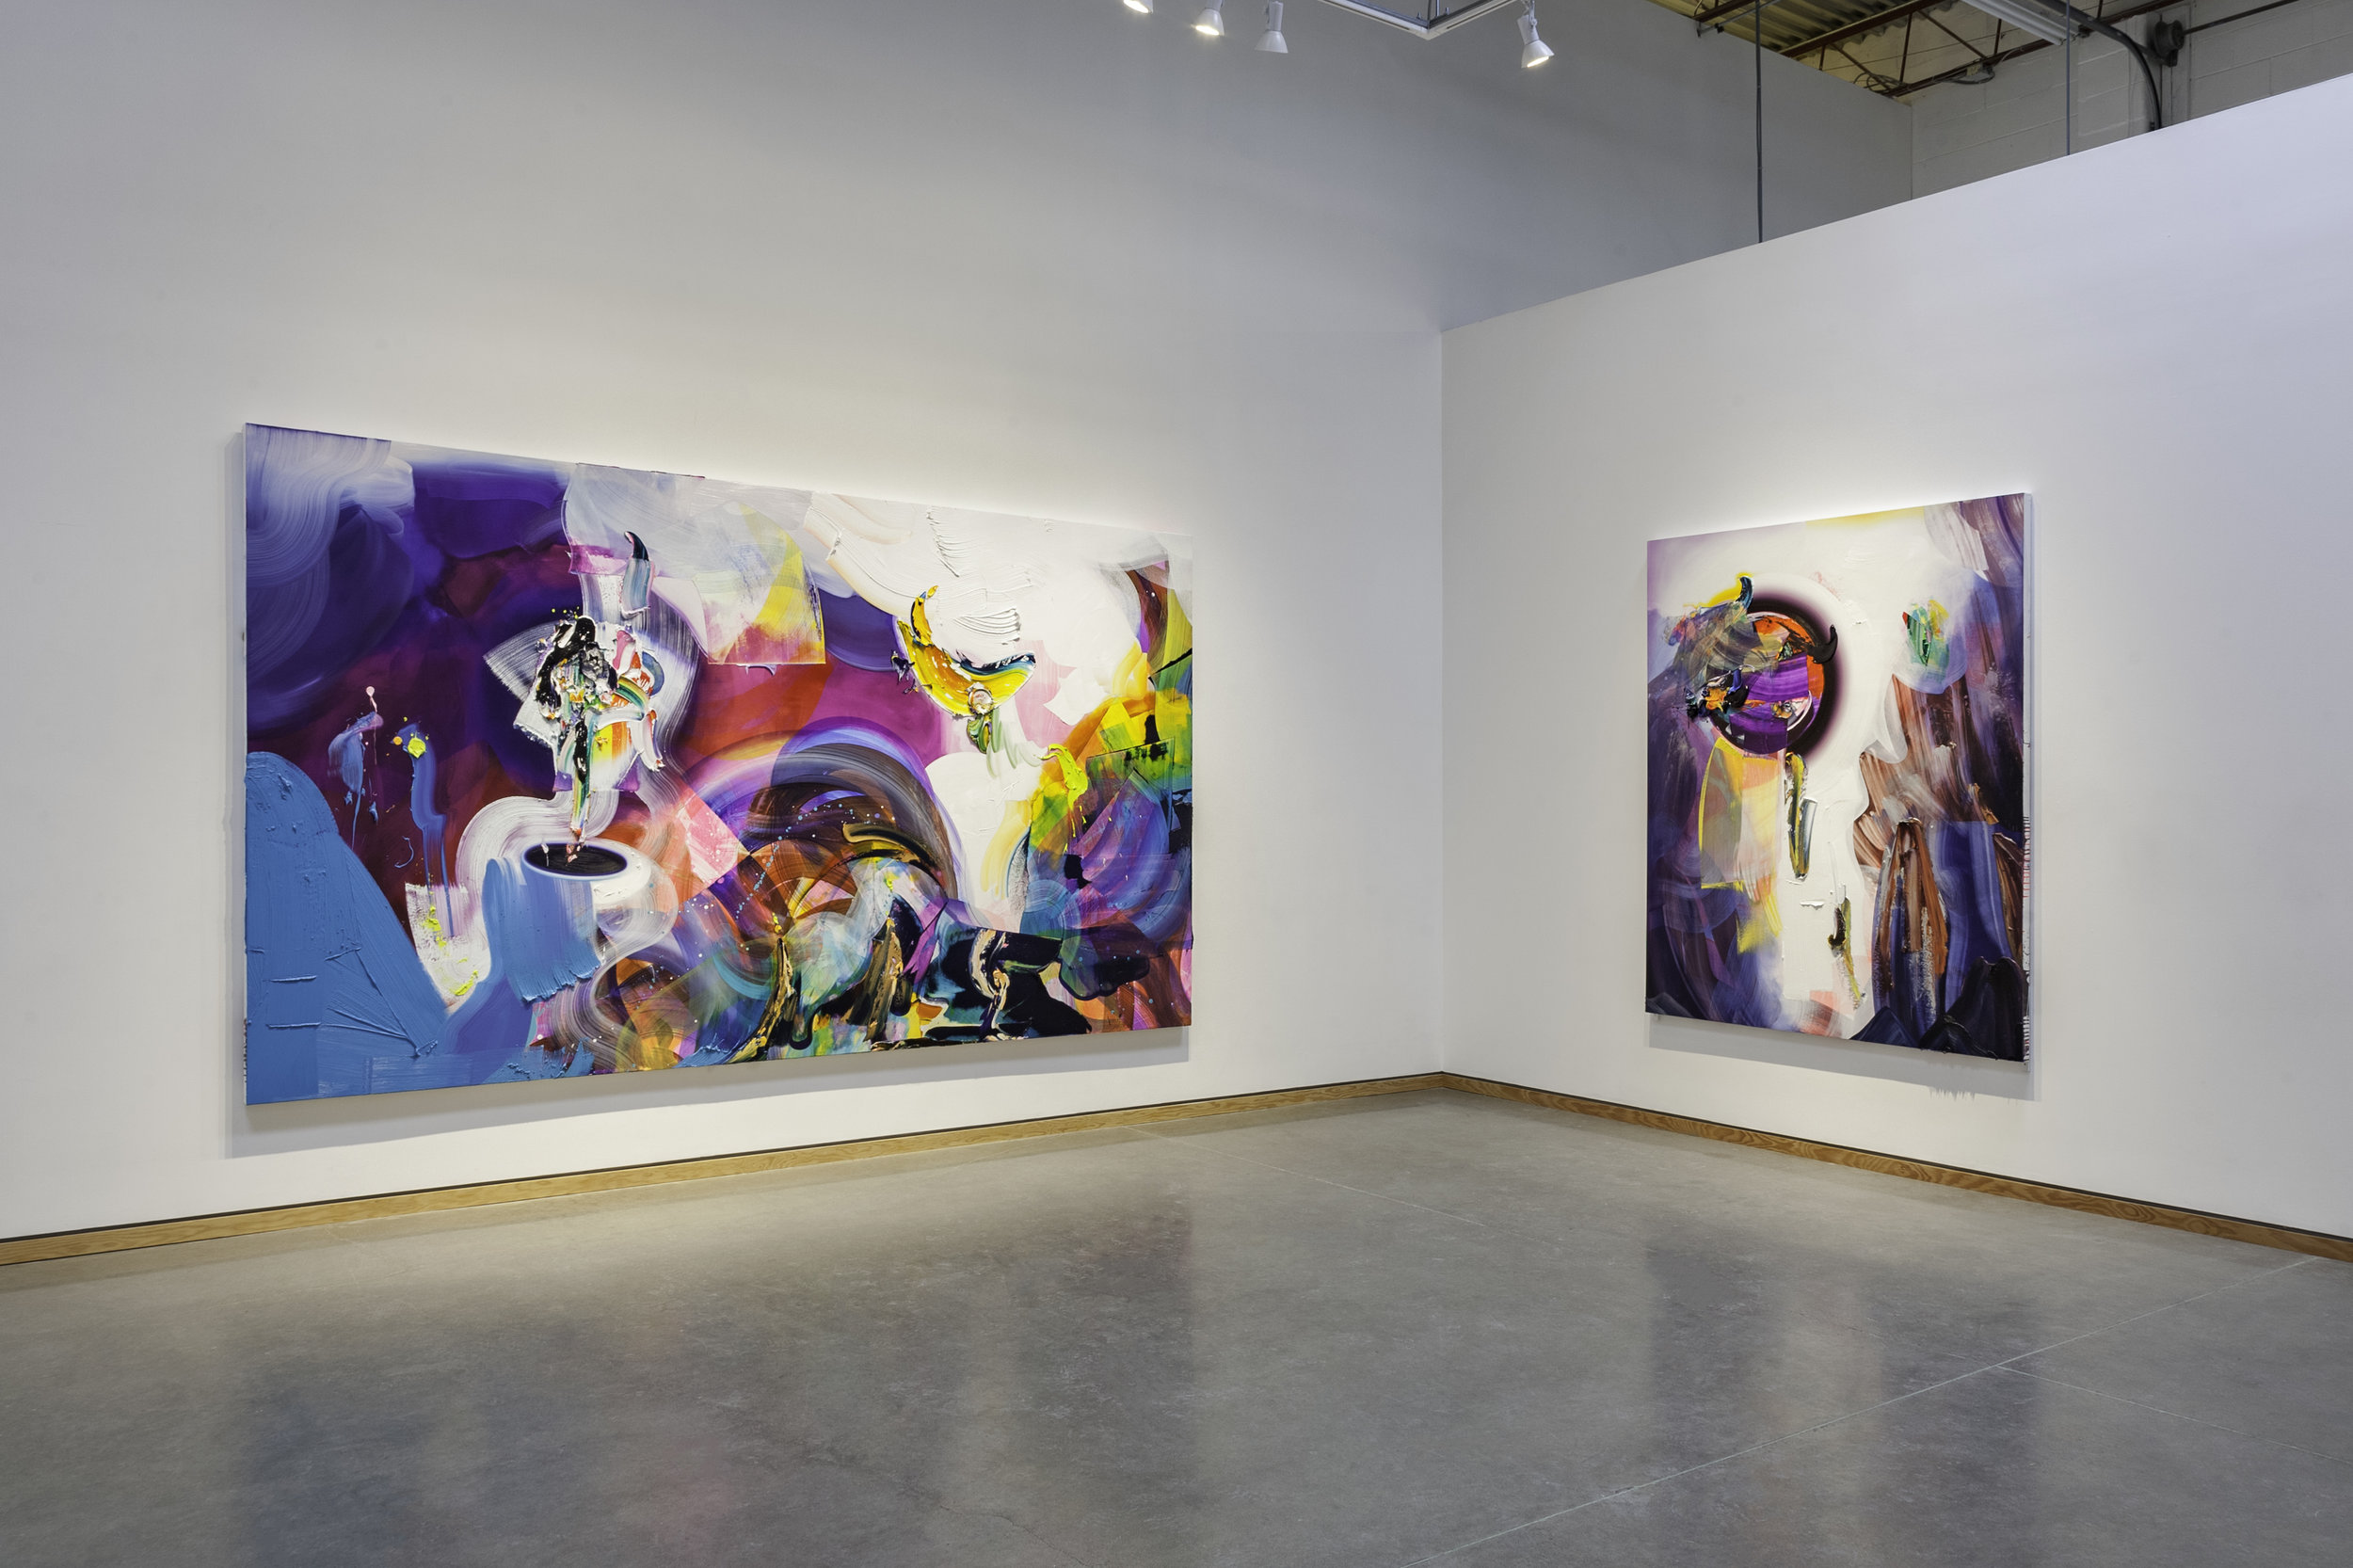 Installation view, Angell Gallery, Toronto, ON